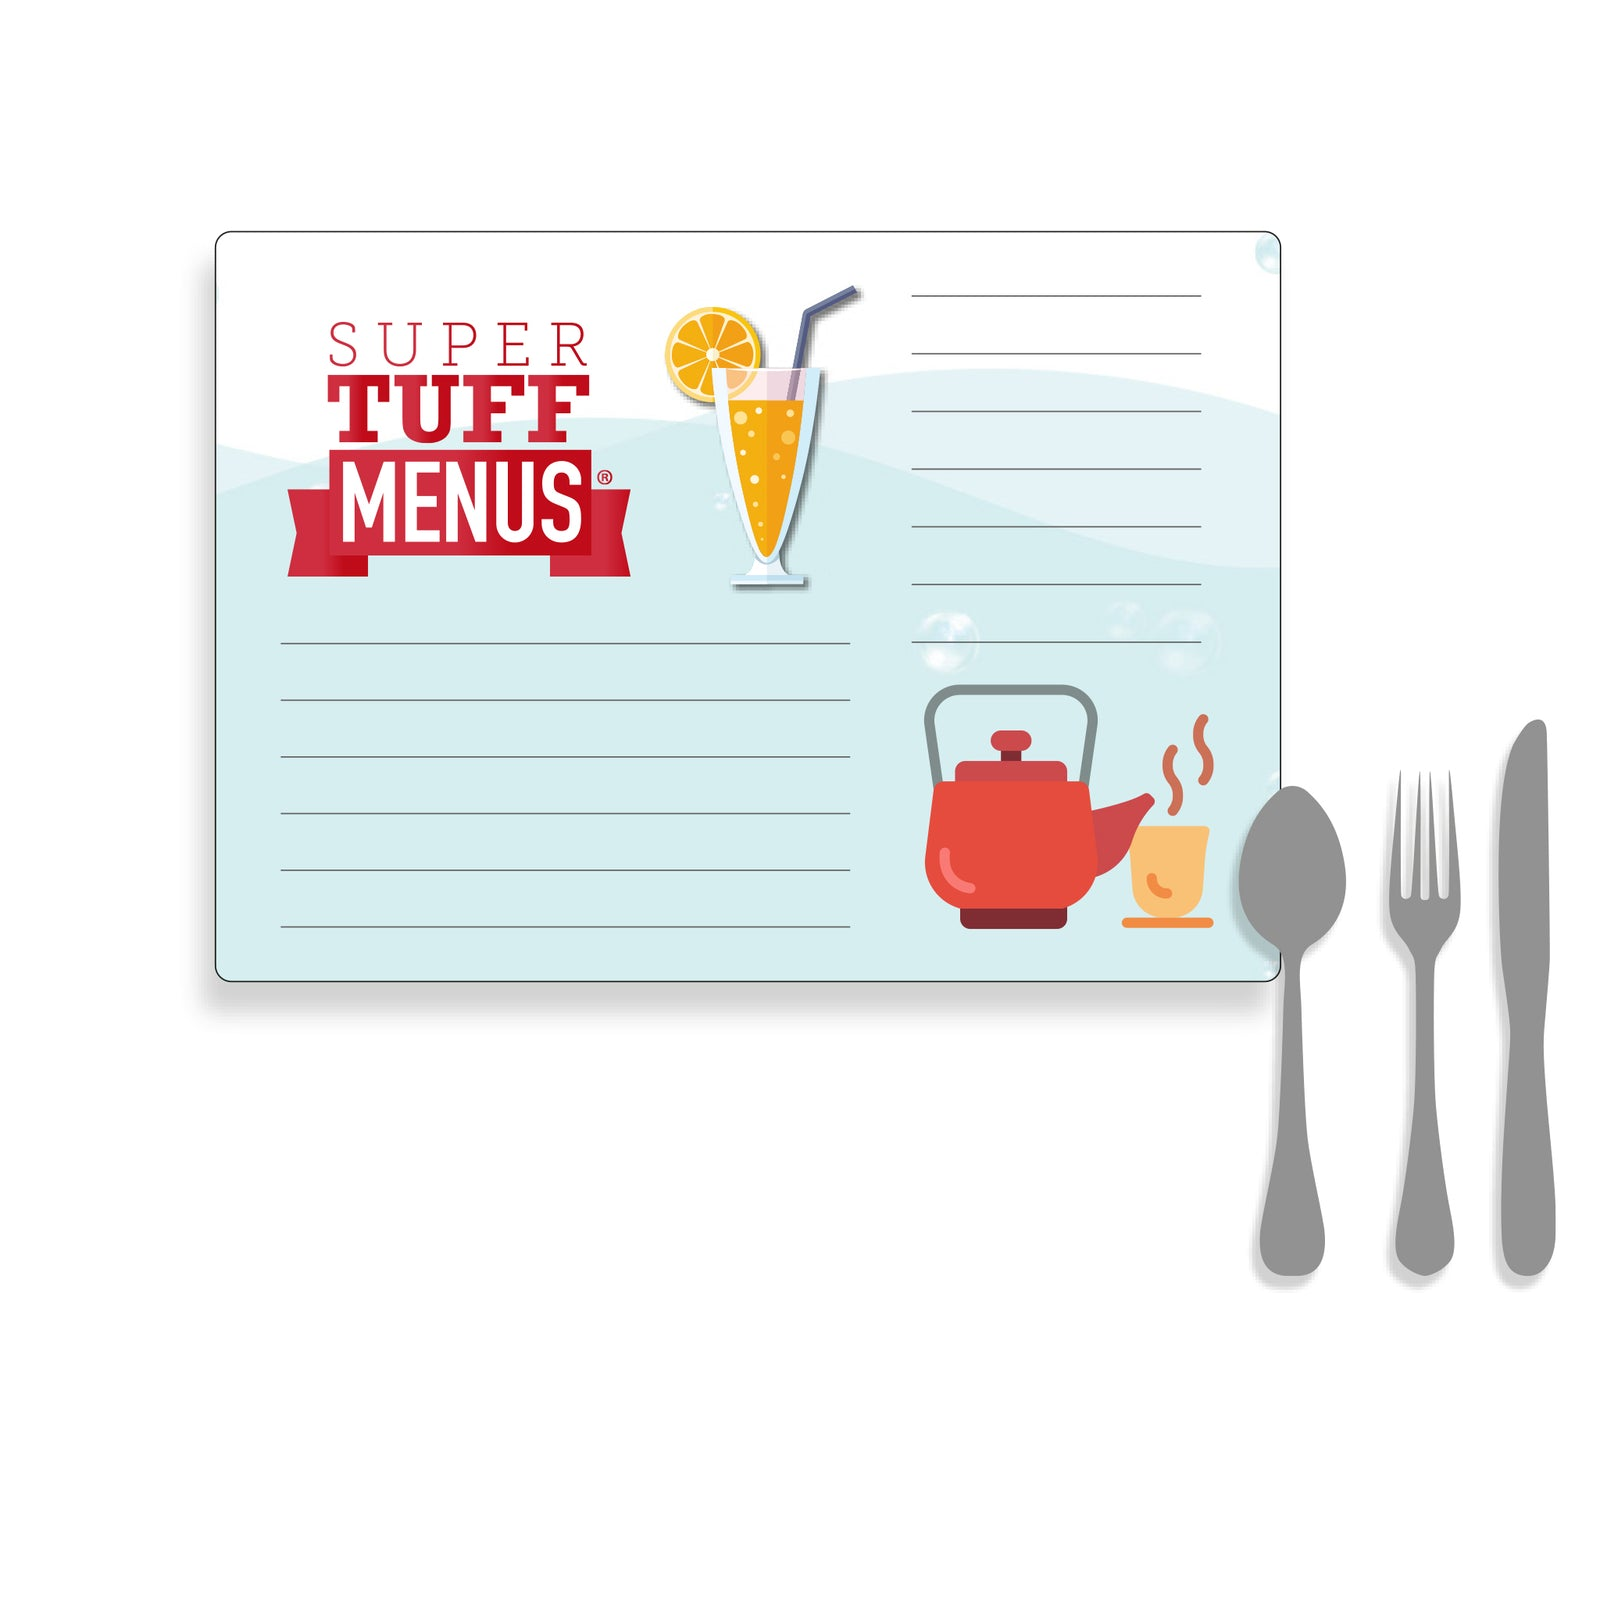 Illustration of Ledger sized Menu with cutlery to demonstrate size